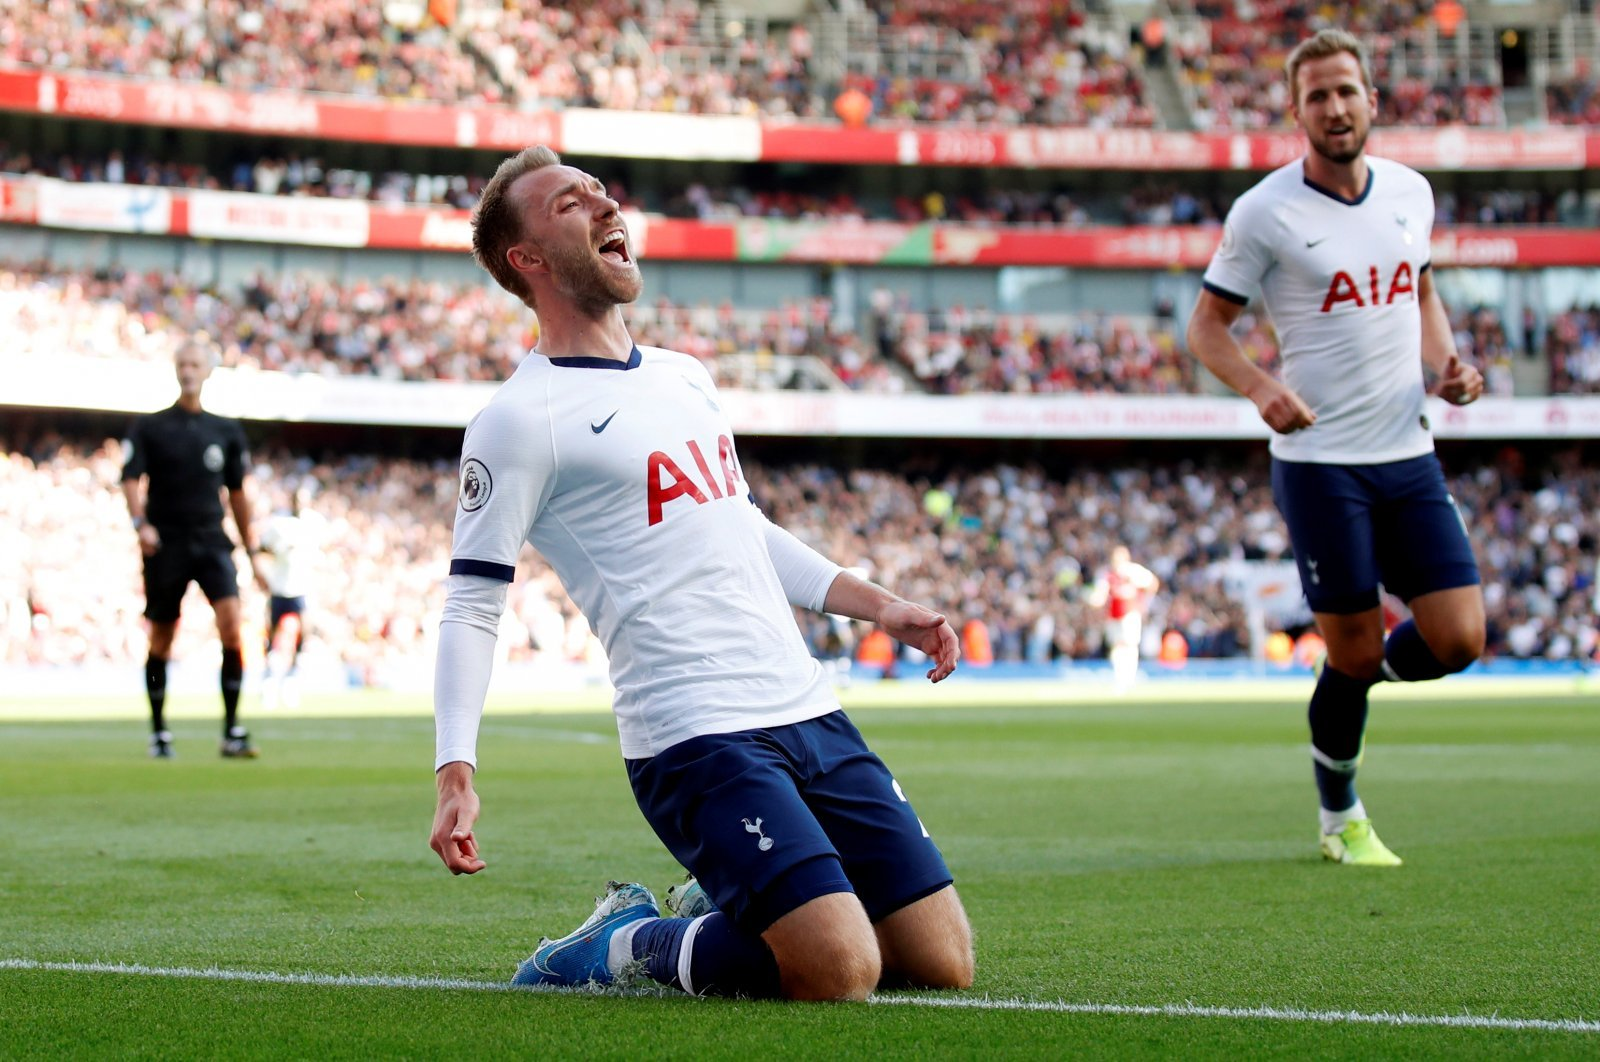 Tottenham Hotspur: Christian Eriksen still holding out hope for Real Madrid move